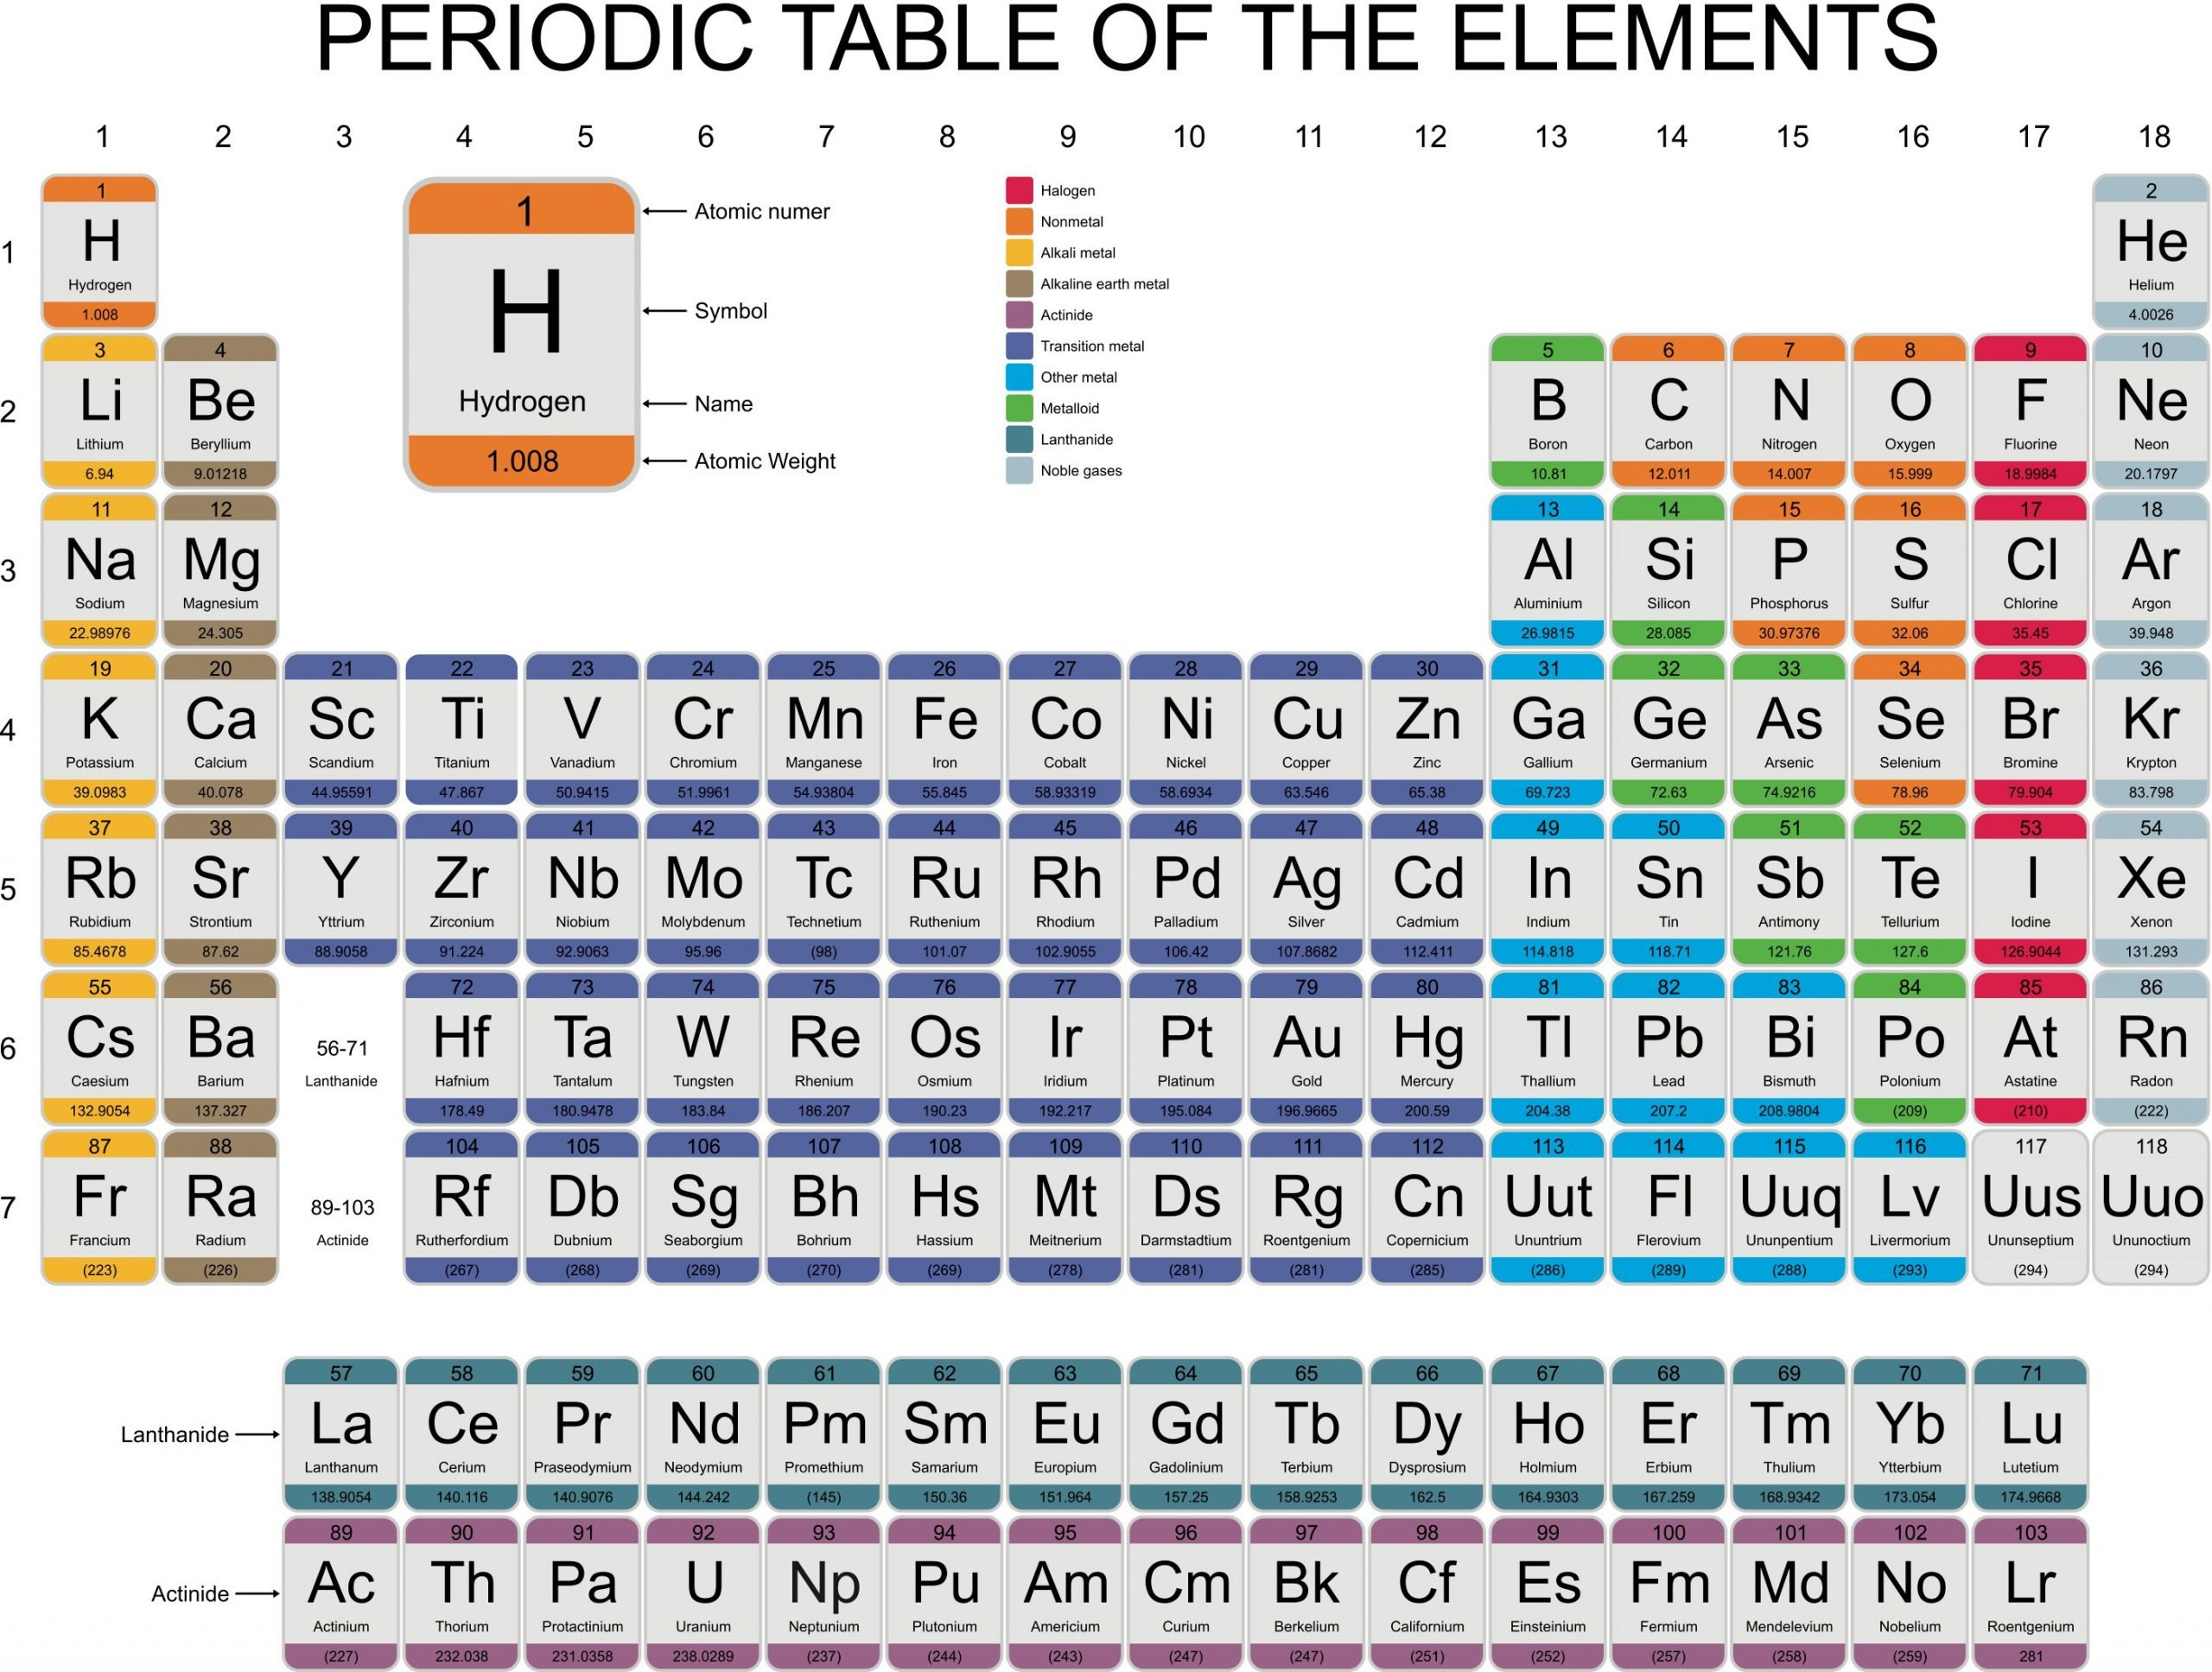 Worksheets On the Periodic Table the Periodic Table Reaction Patterns Worksheet Edplace